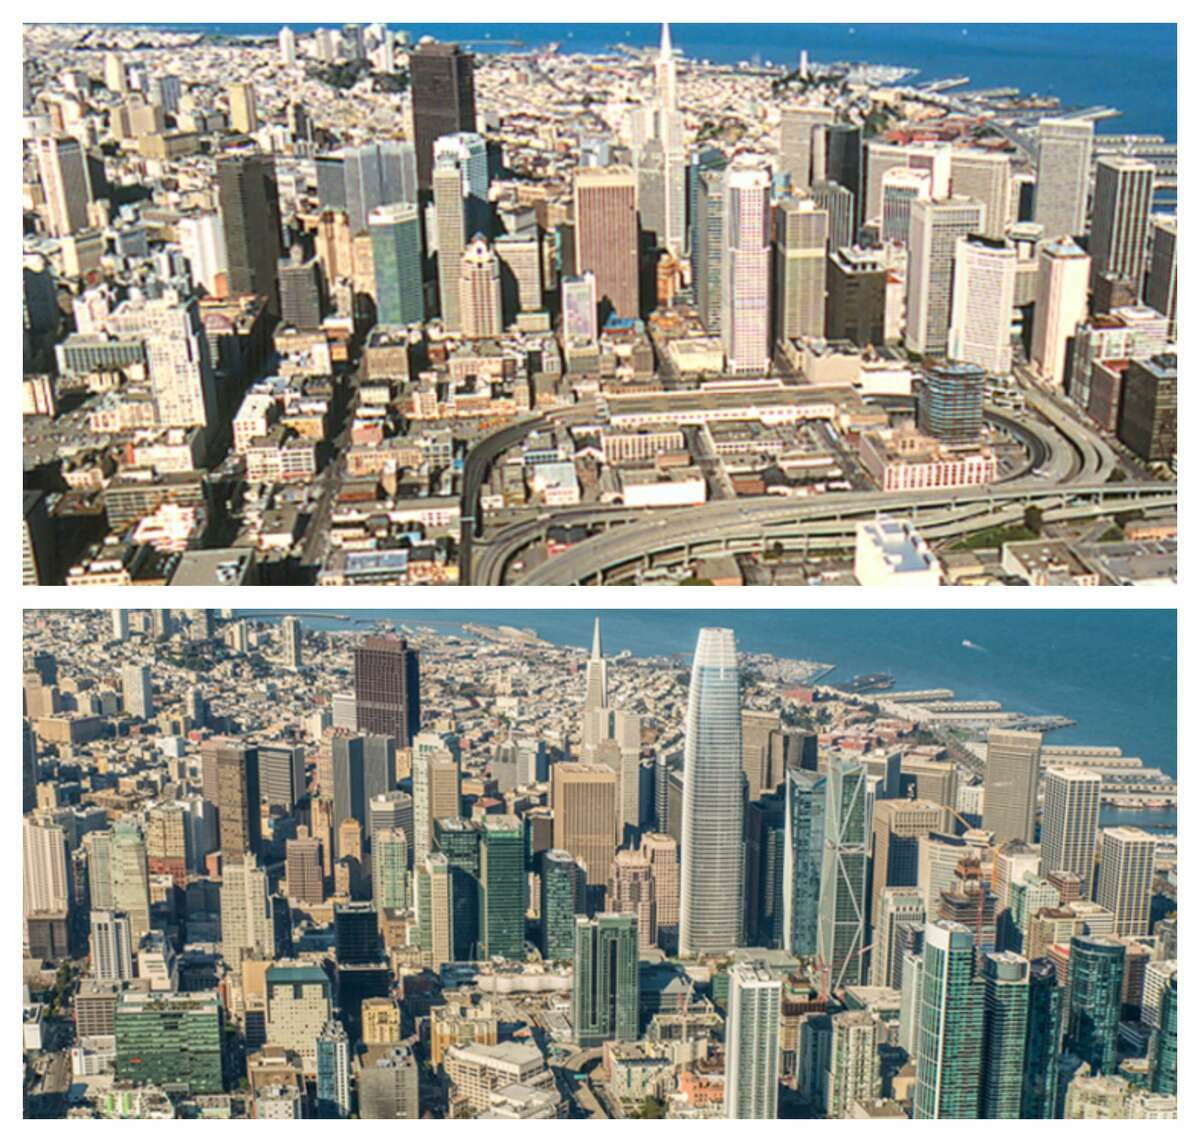 San Francisco skyline: Before and after: 1980s vs. 2017 Much has changed in the last 30 years. Here we compare an aerial photograph from the mid-1980s to one taken Dec. 12, 2017.